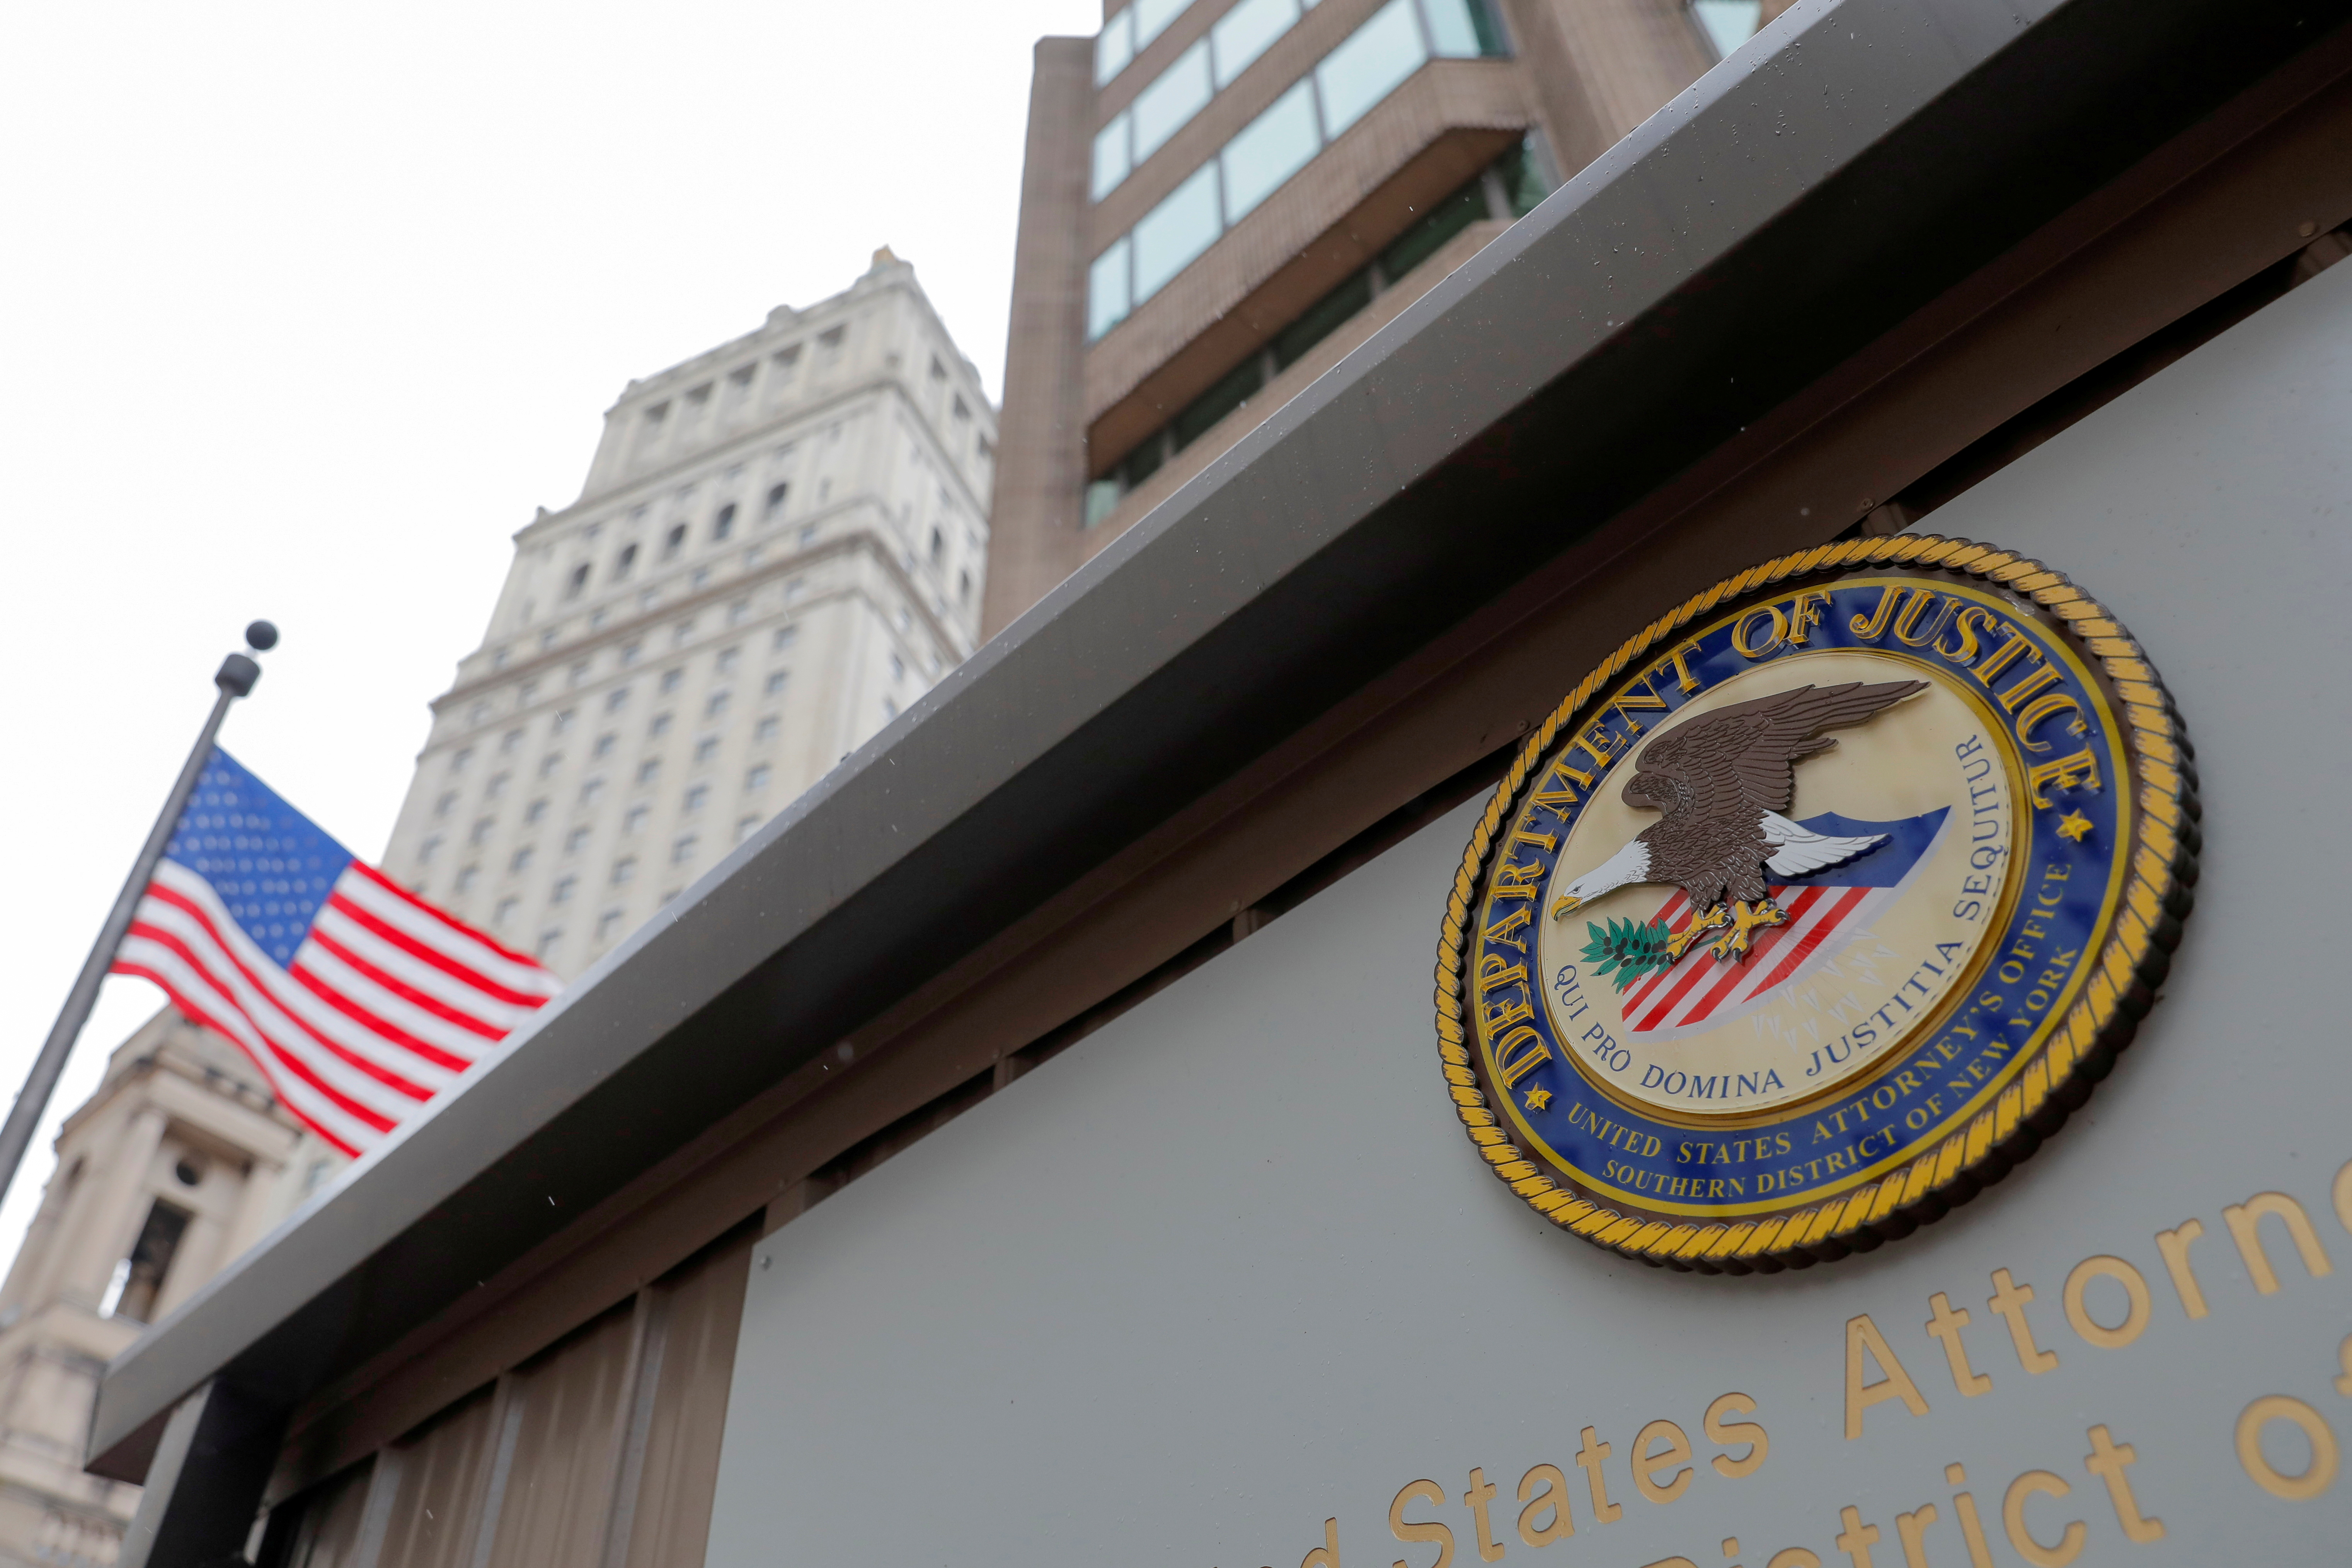 The seal of the United States Department of Justice on the building exterior of the United States Attorney's Office of the Southern District of New York in Manhattan, New York City, August 17, 2020. REUTERS/Andrew Kelly